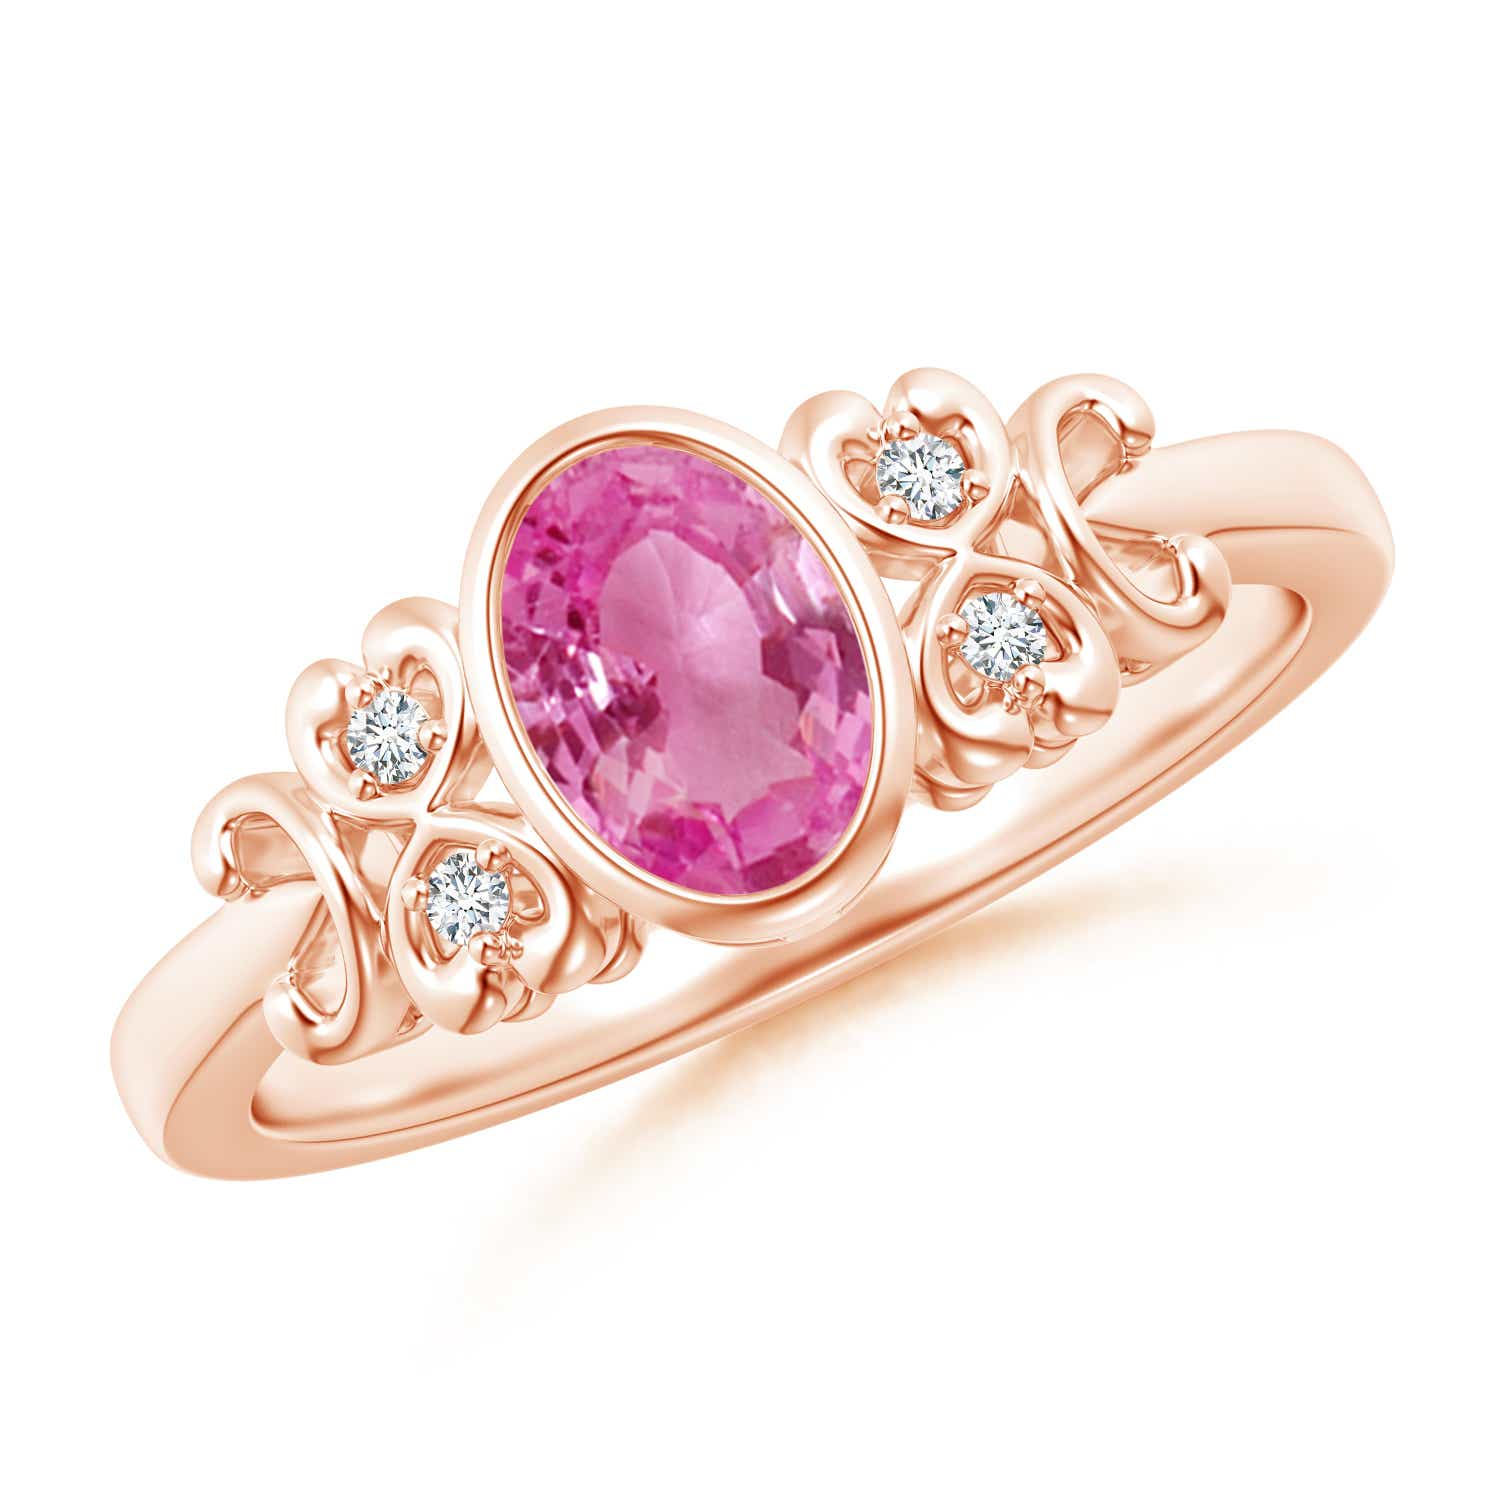 Vintage Style Bezel-Set Oval Pink Sapphire Ring with Diamonds | Angara